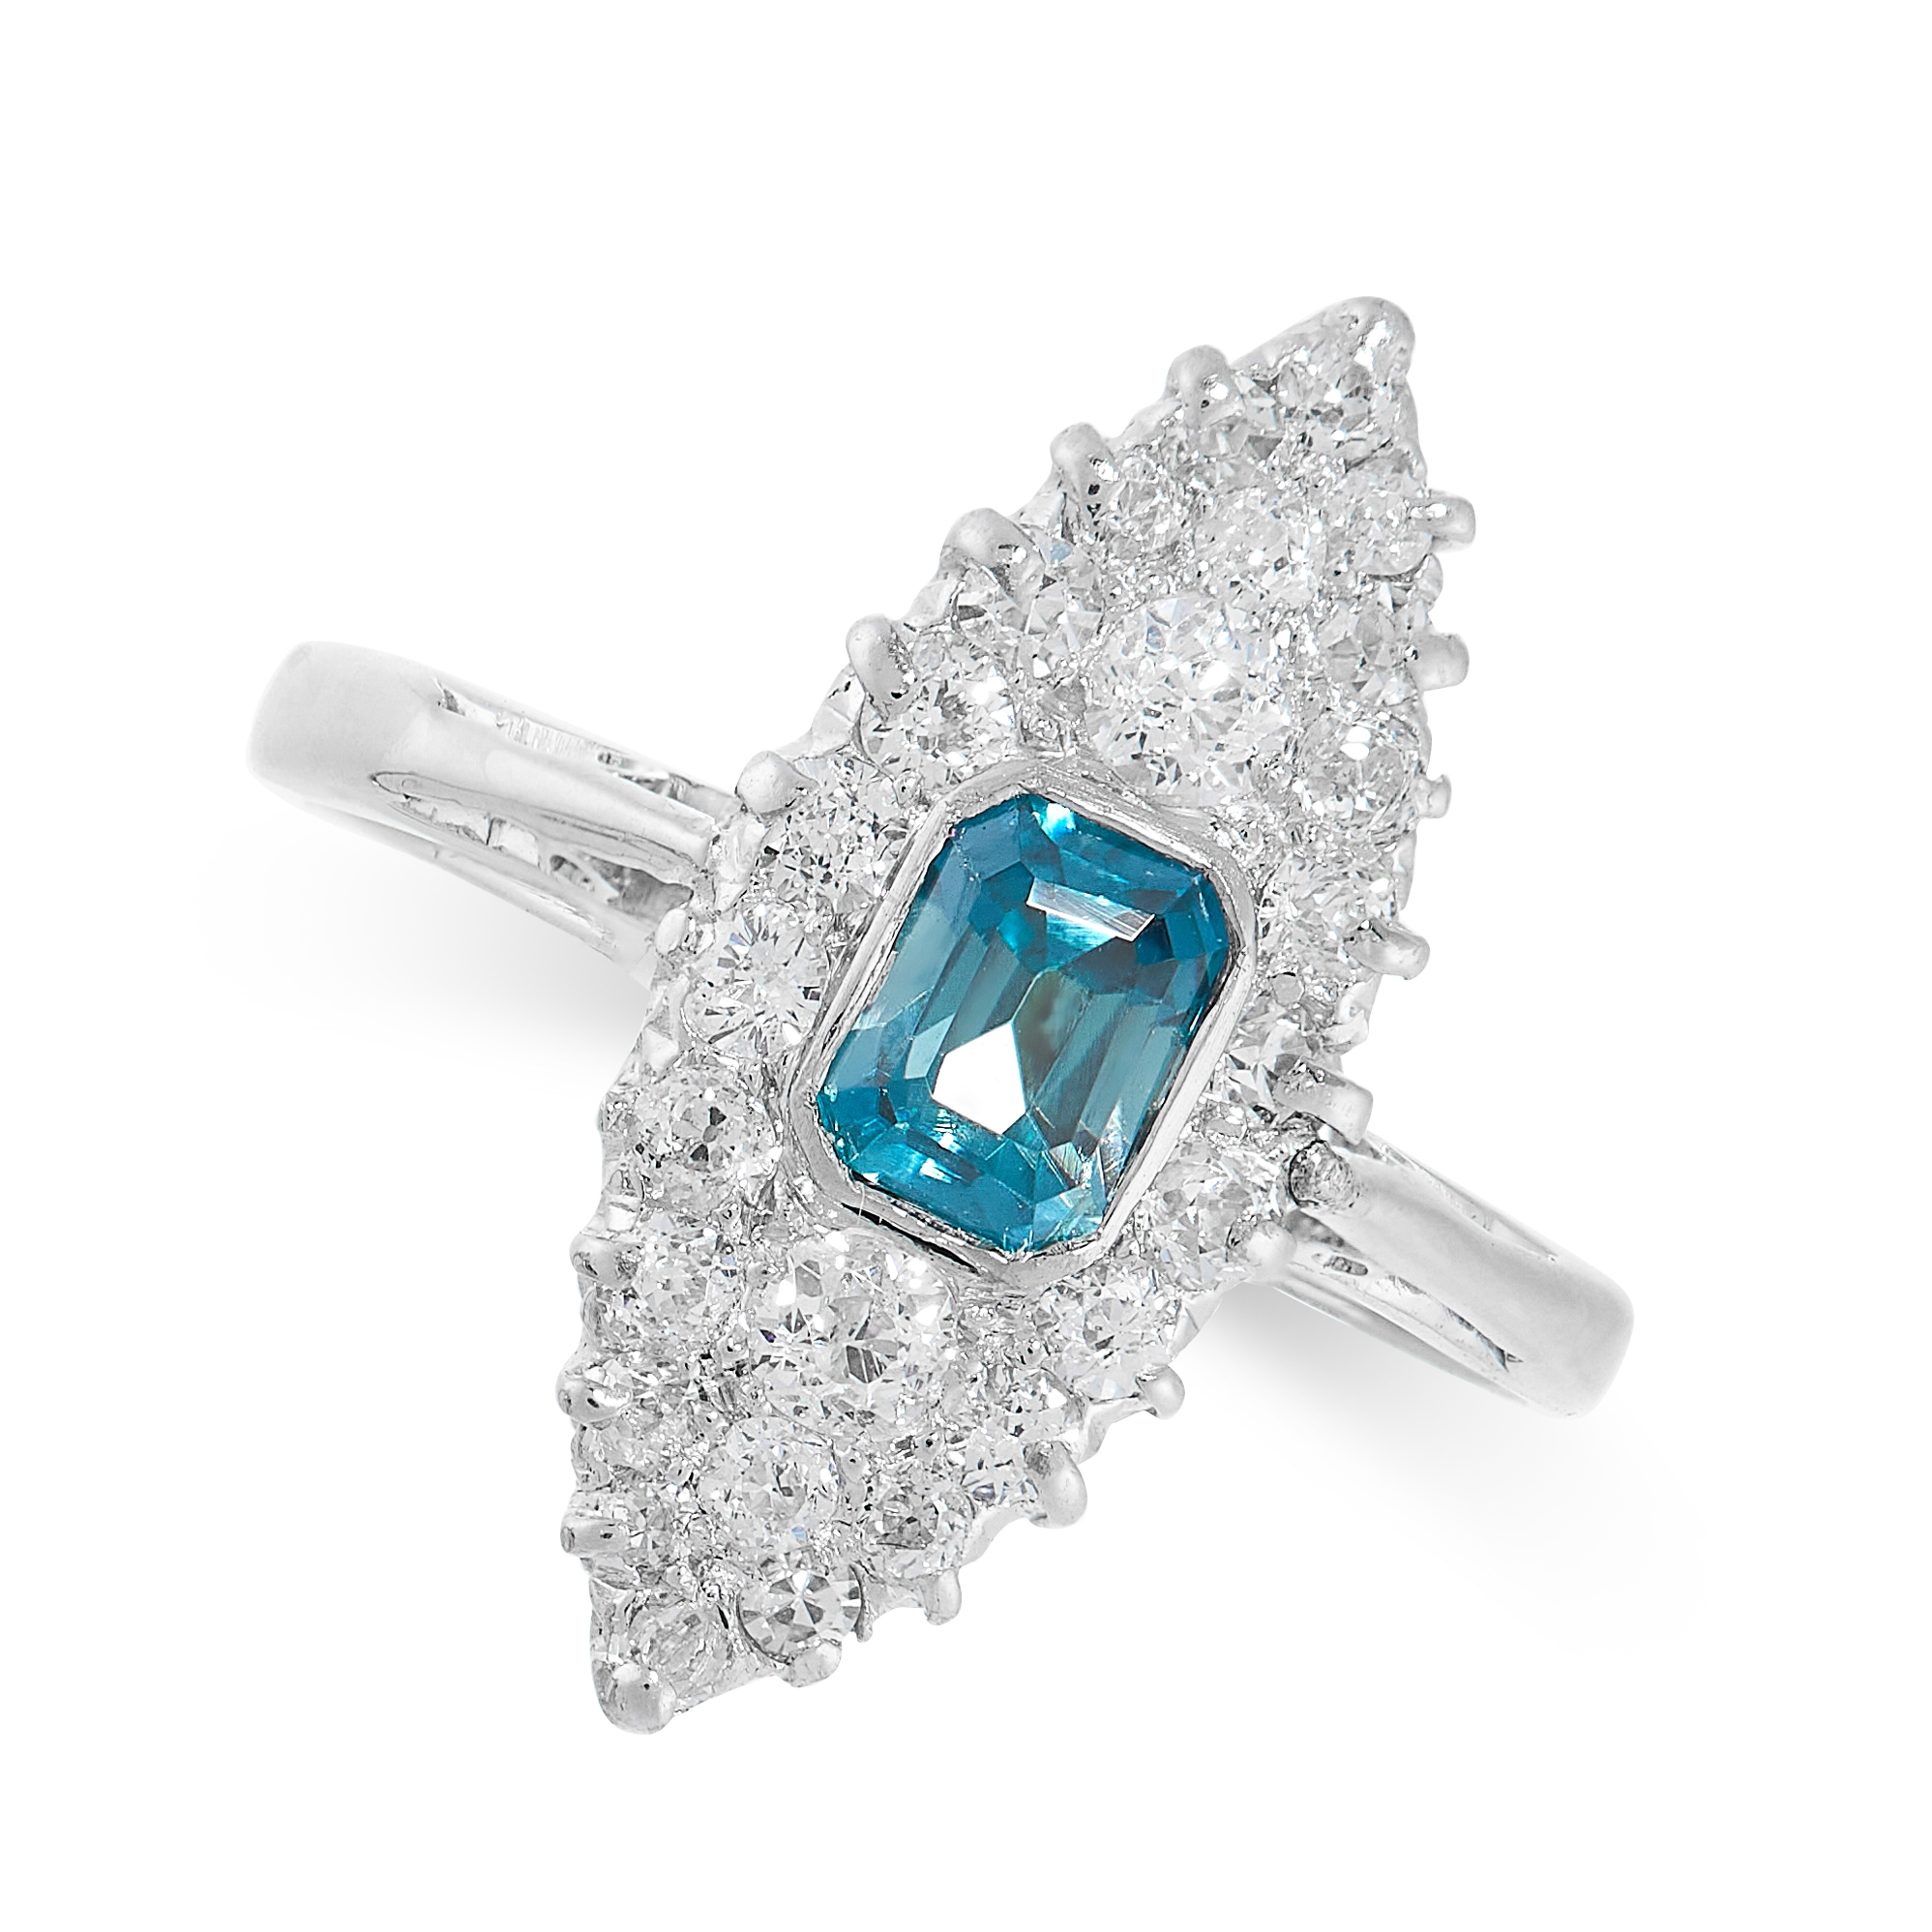 A BLUE ZIRCON AND DIAMOND RING the navette shaped face set with an emerald cut blue zircon, accented